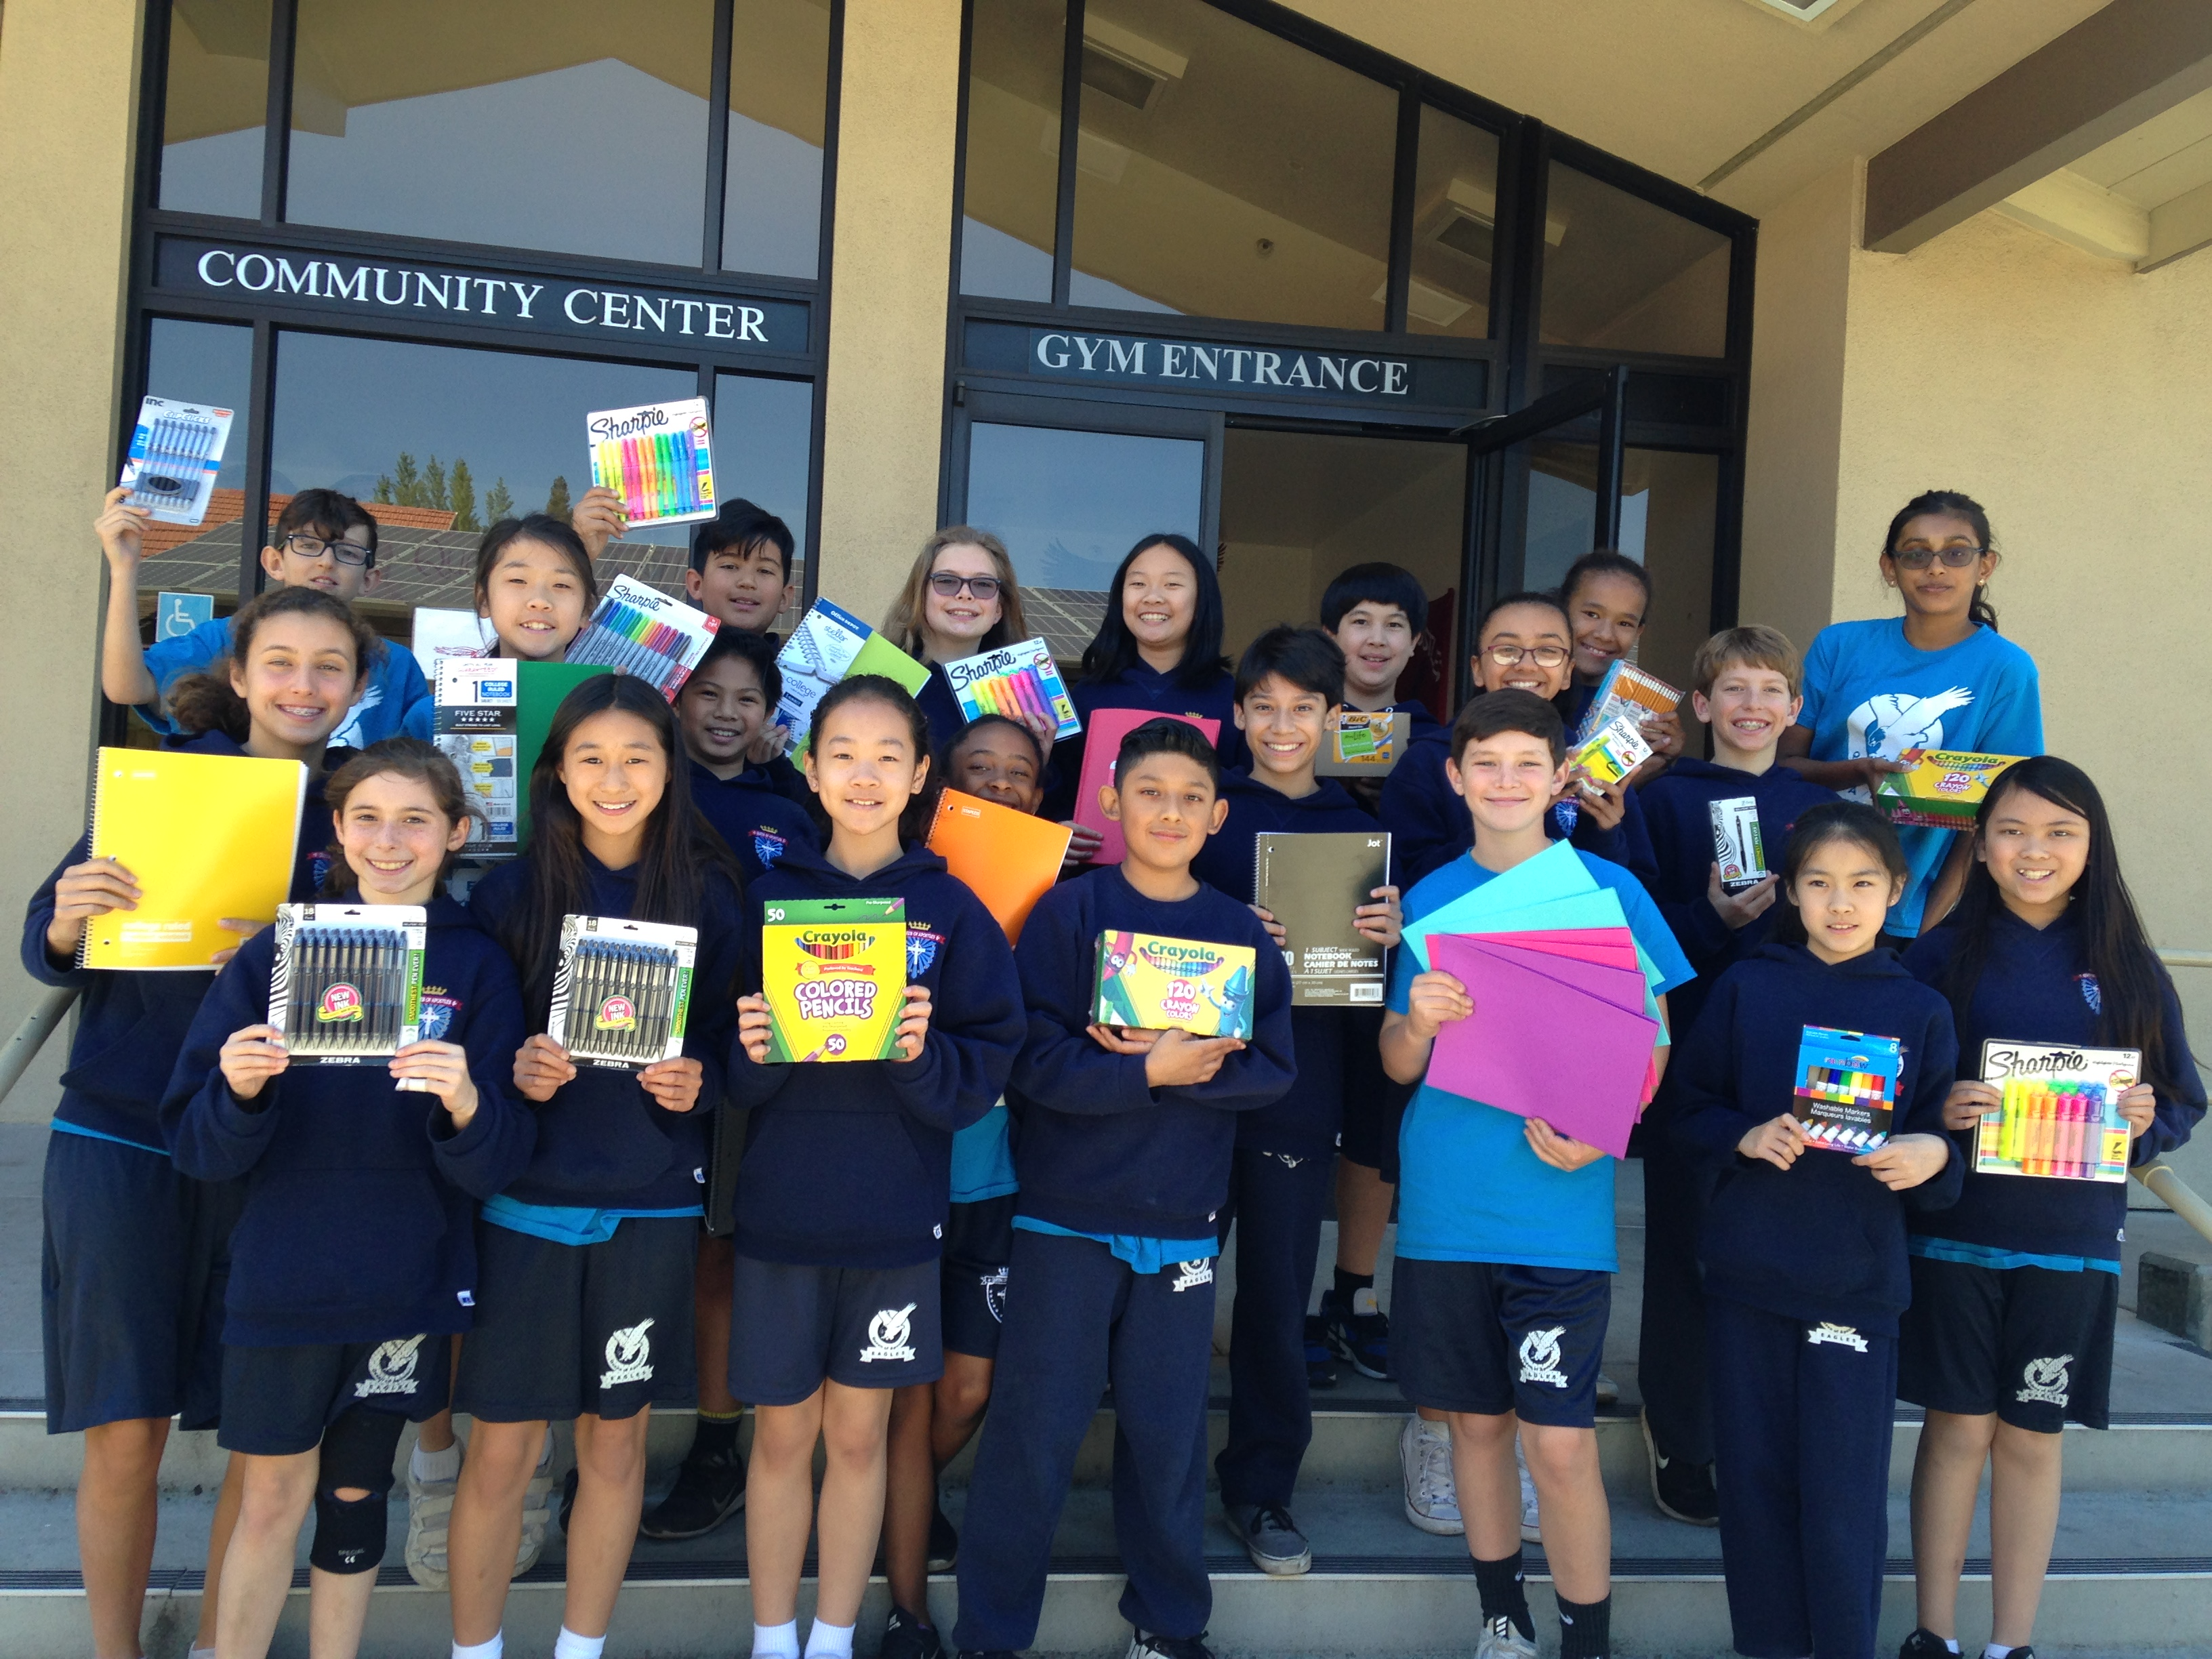 Supplies Drive 5th Grade Student Leaders